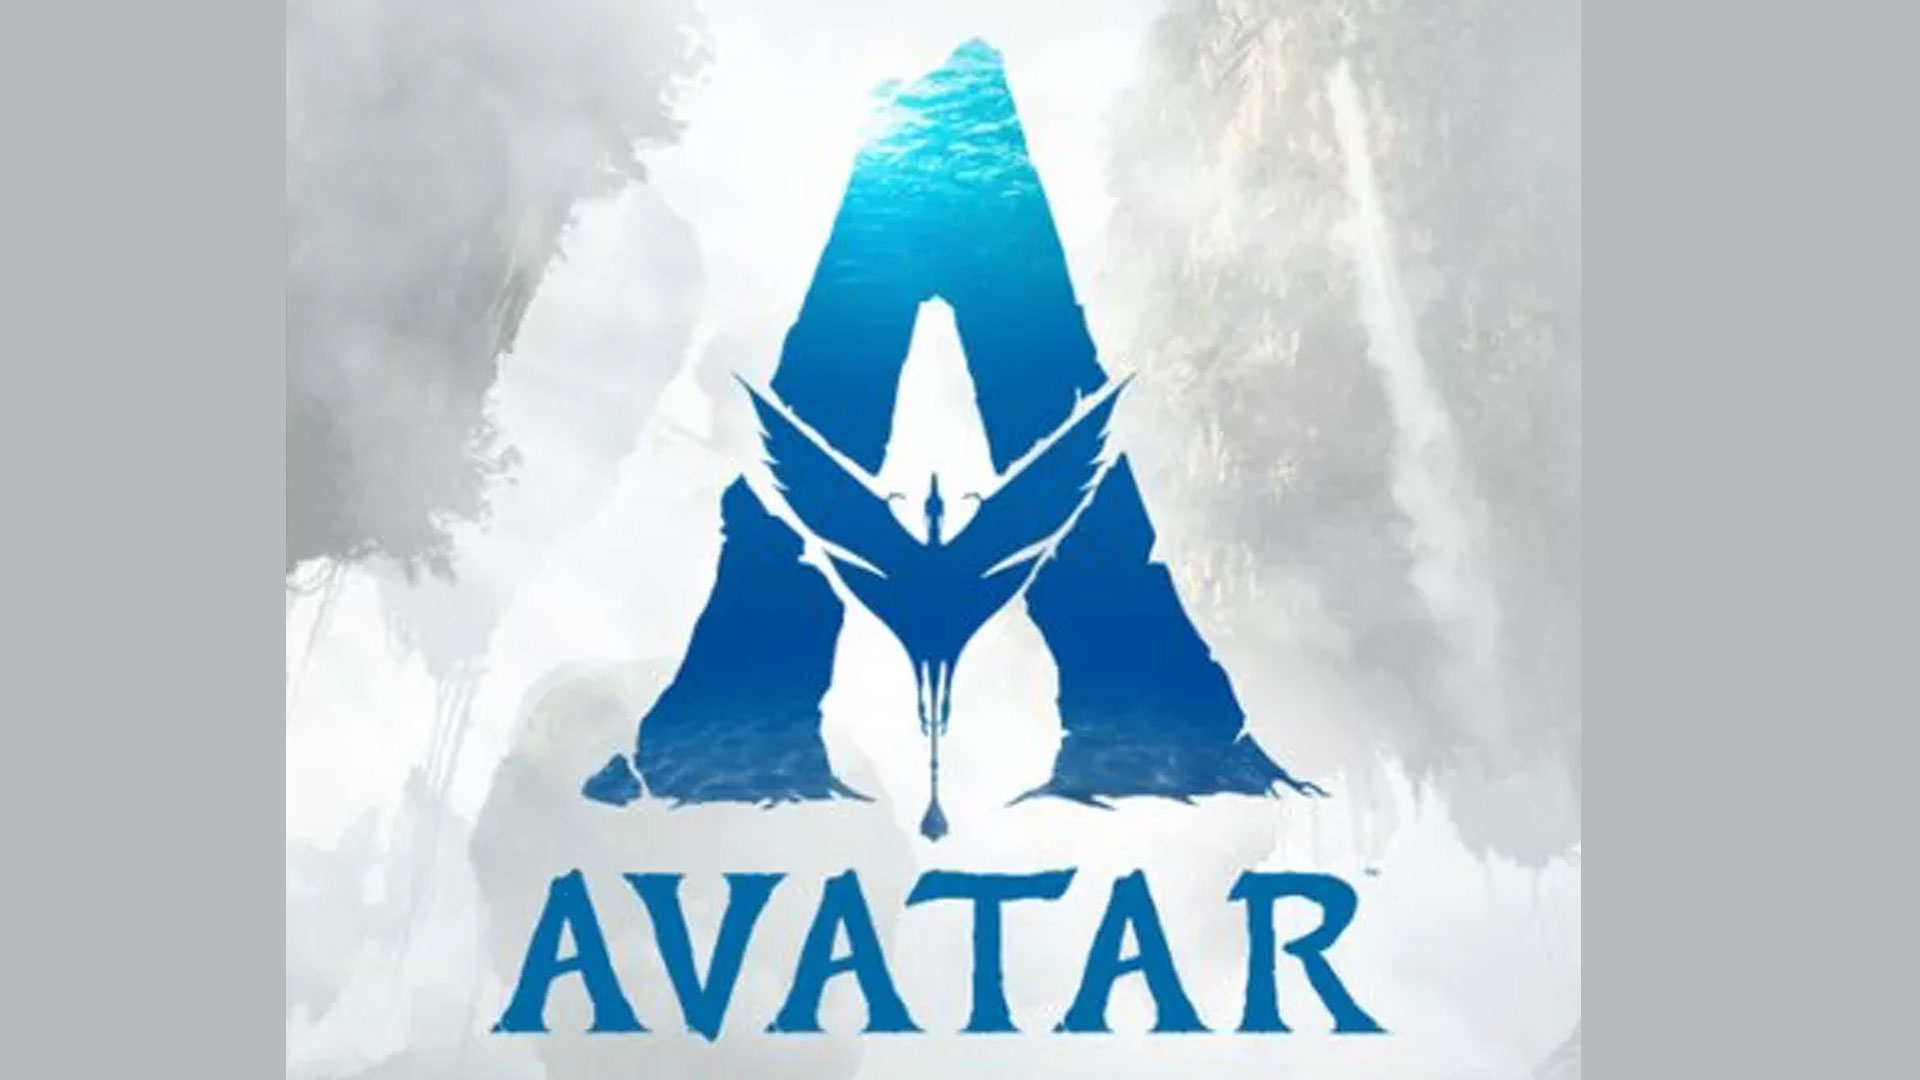 Avatar The Way of Water Screenshot